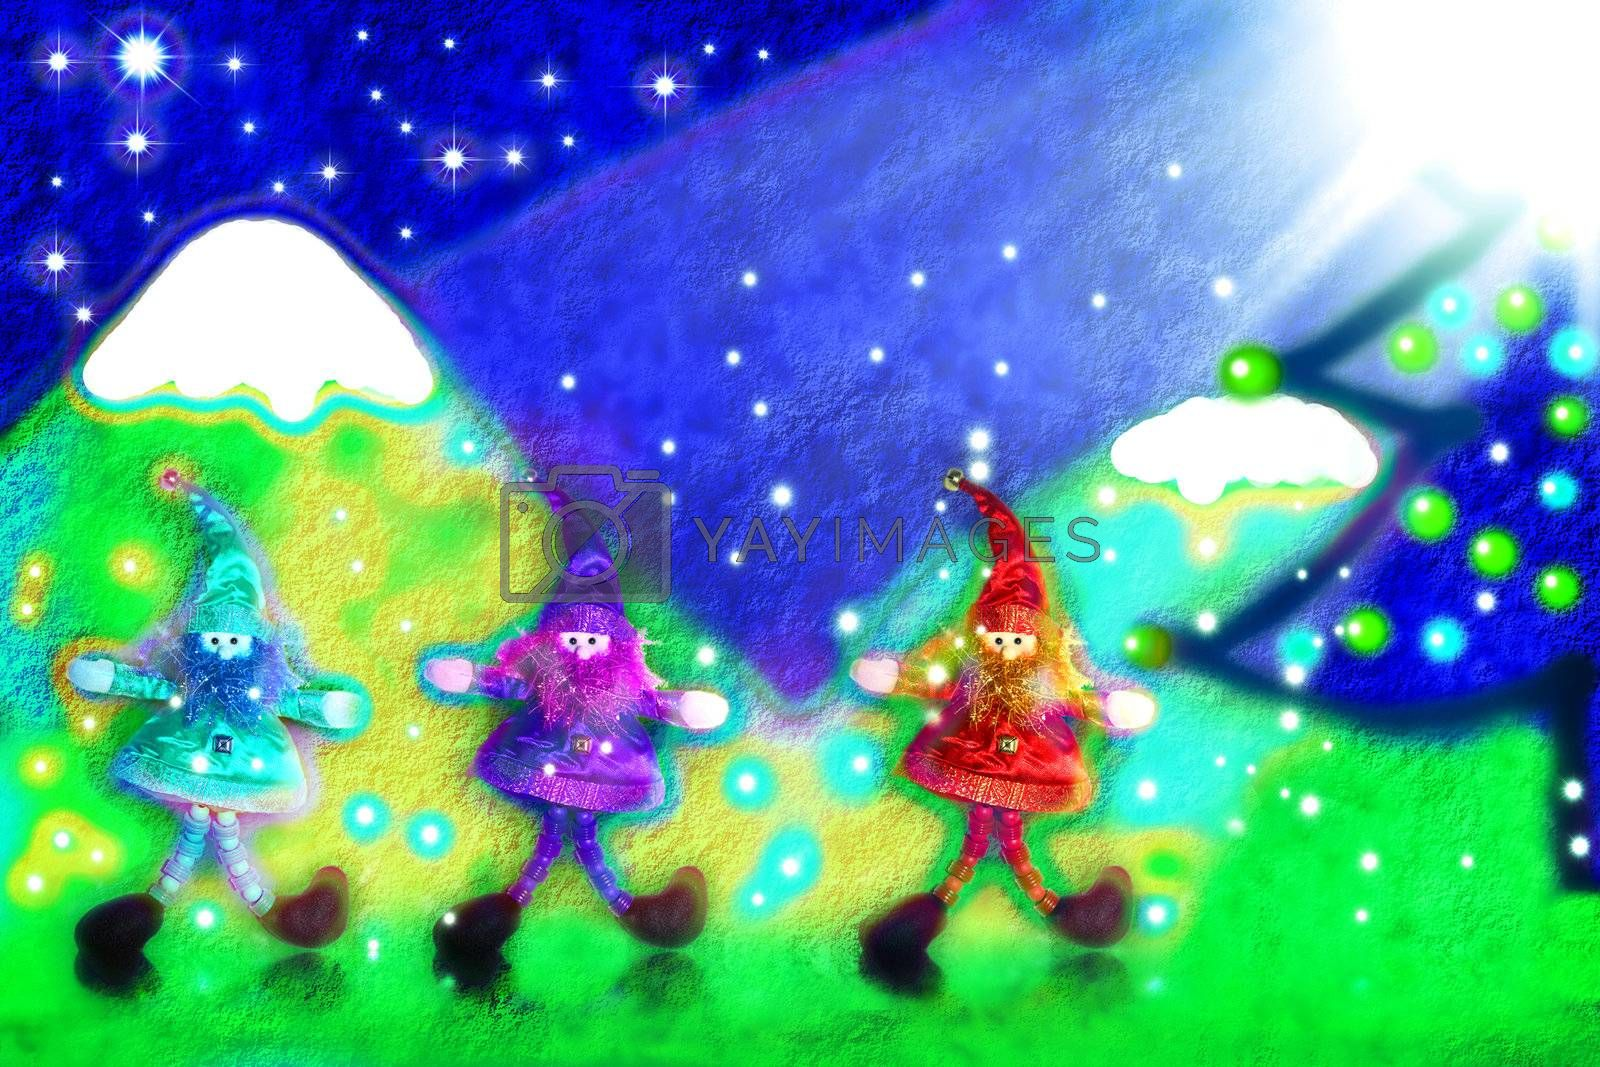 three santa's elves, a landscape painted in child